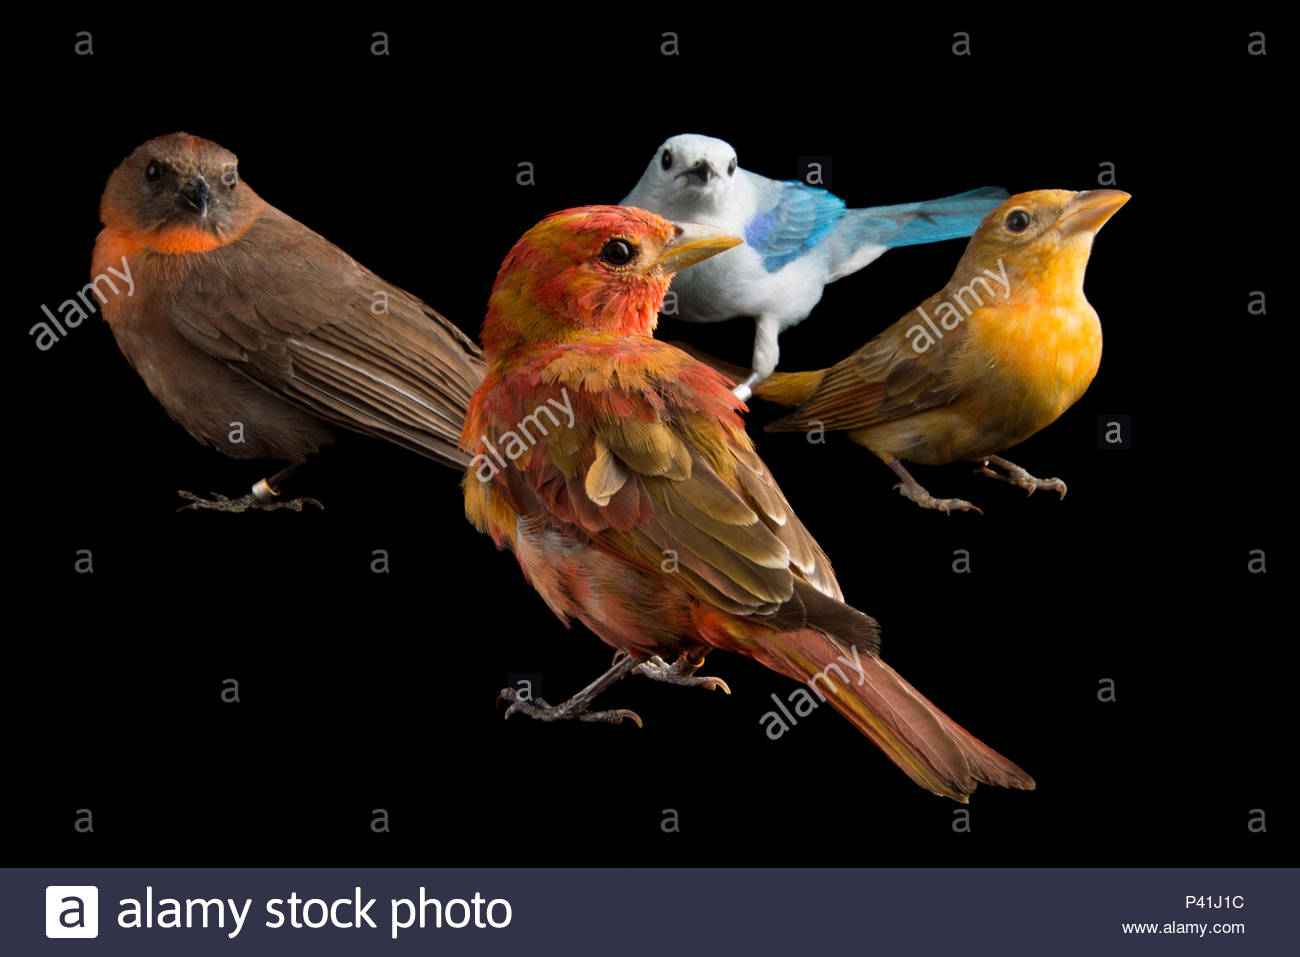 Red throated ant tanager, Habia fuscicauda, hepatic tanager, Piranga flava, blue-grey tanager, Thraupis episcopus, at the National Aviary of Colombia. - Stock Image